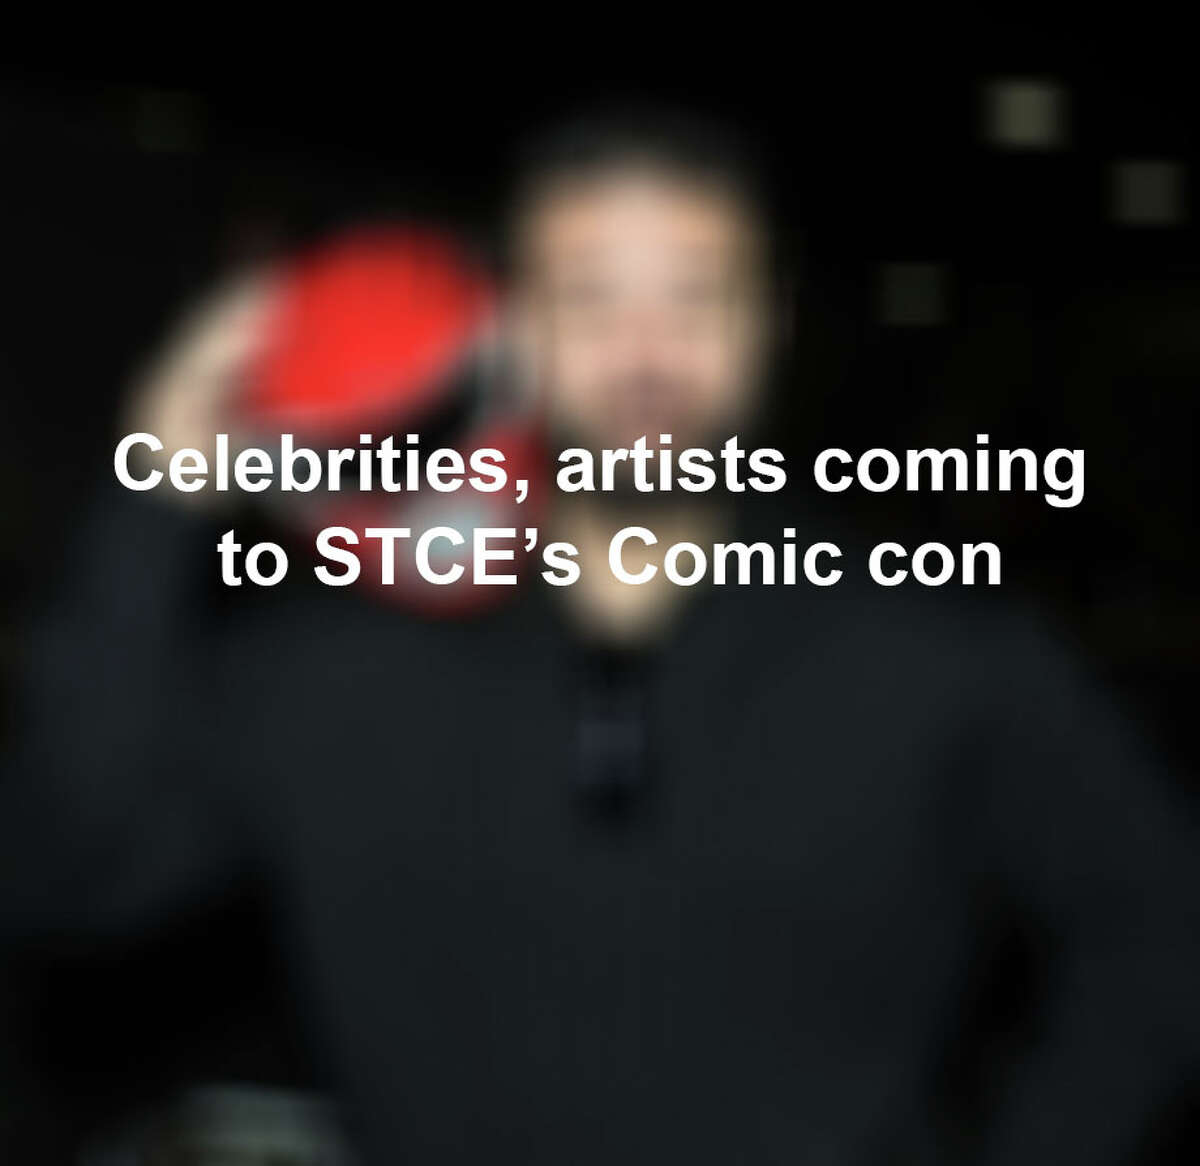 Celebrities and artists coming to STCE's Comic Con 2018.